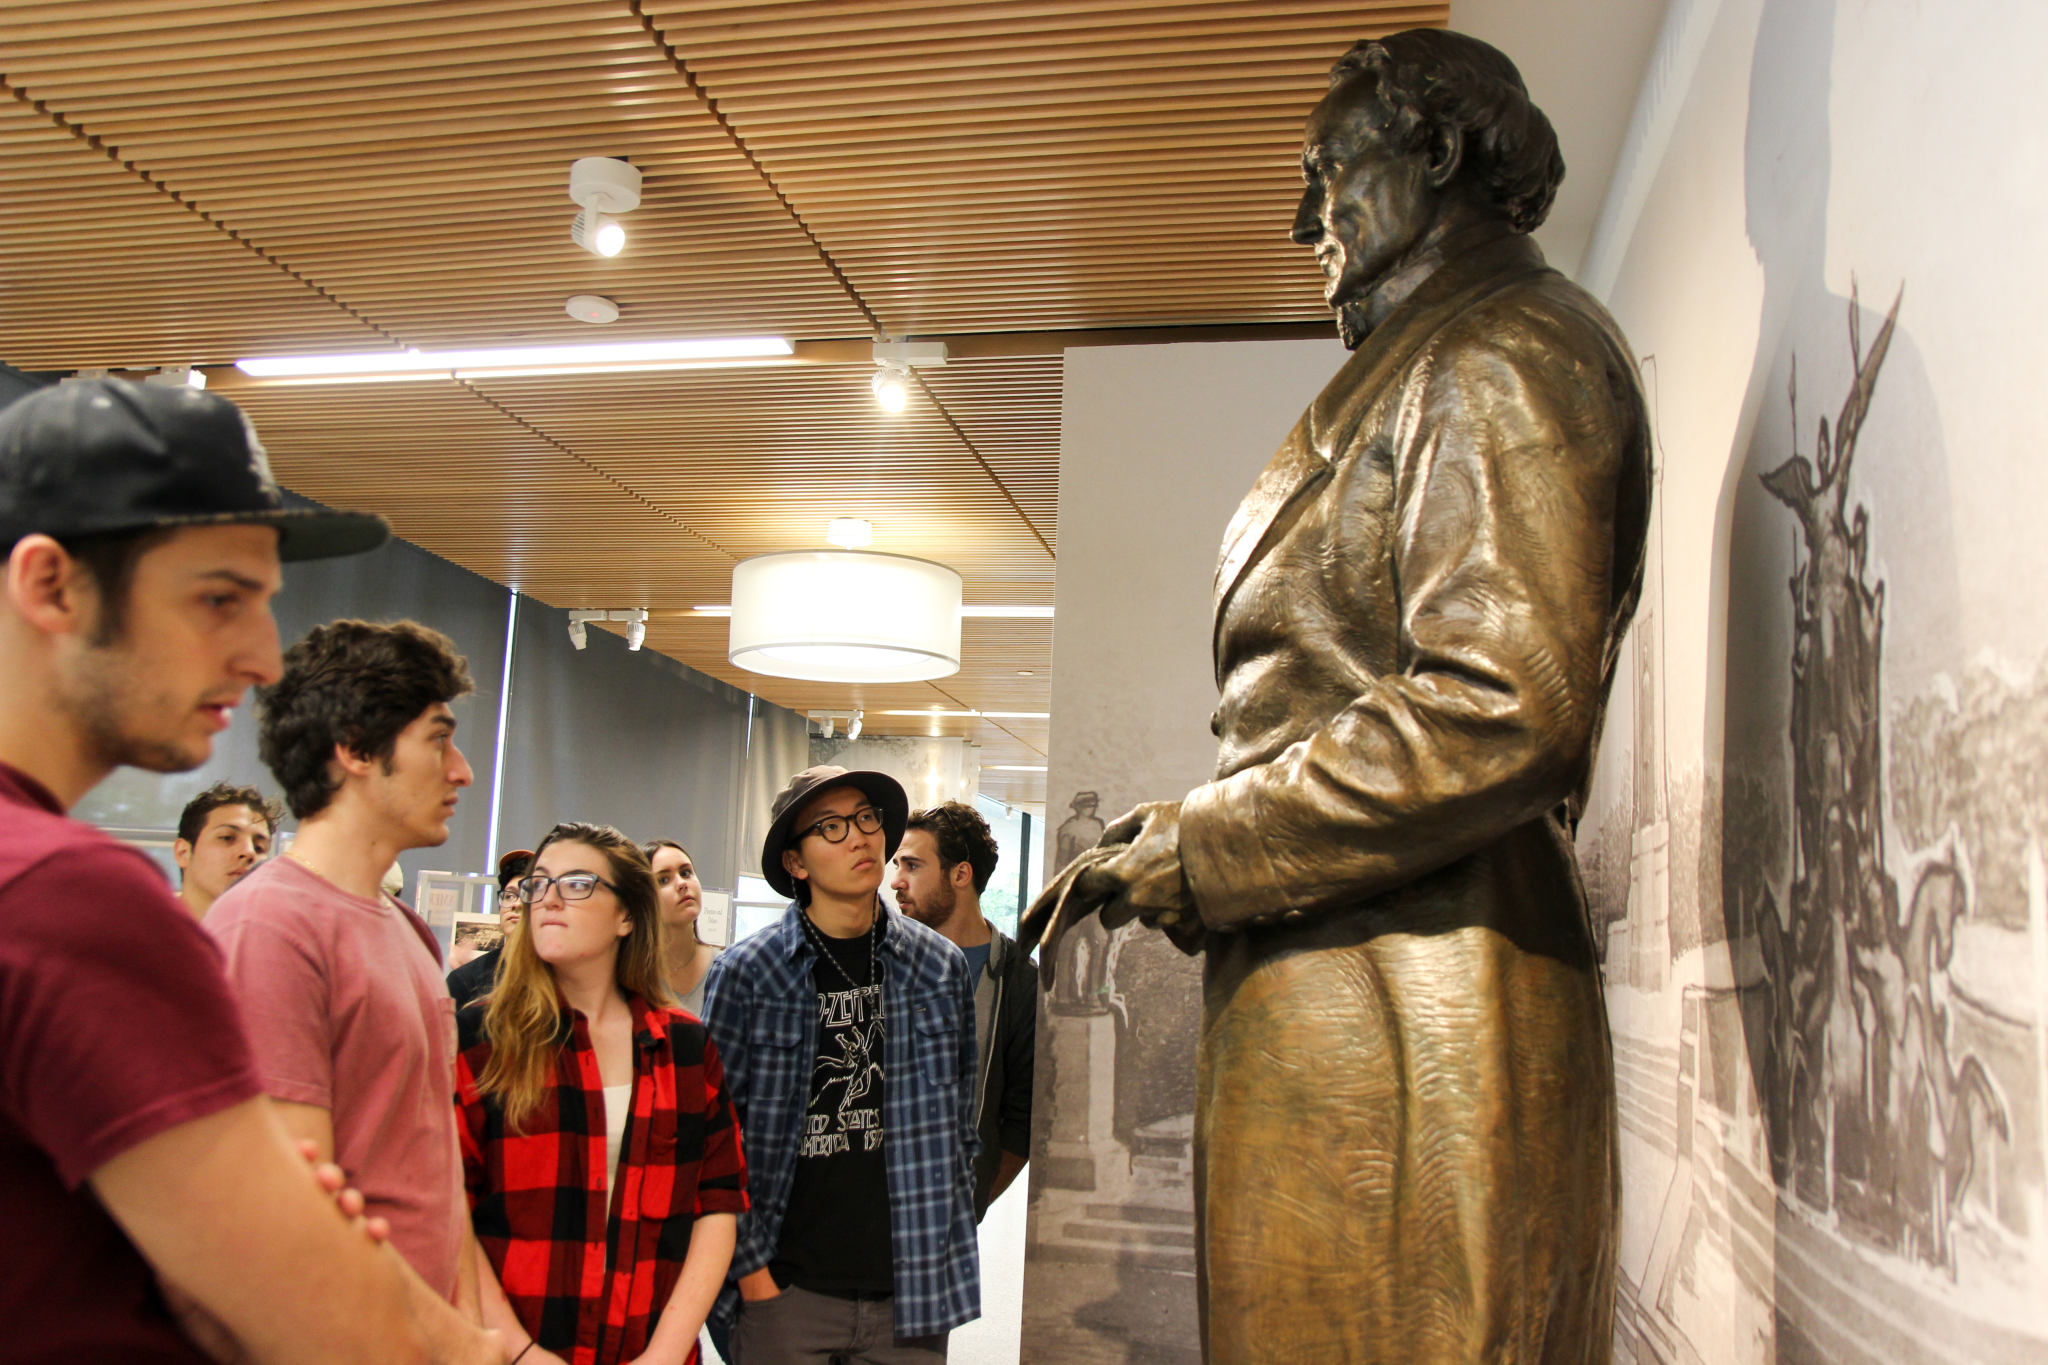 Students at the University of Texas at Austin visit the Jefferson Davis exhibit at the Dolph Briscoe Center for American History.